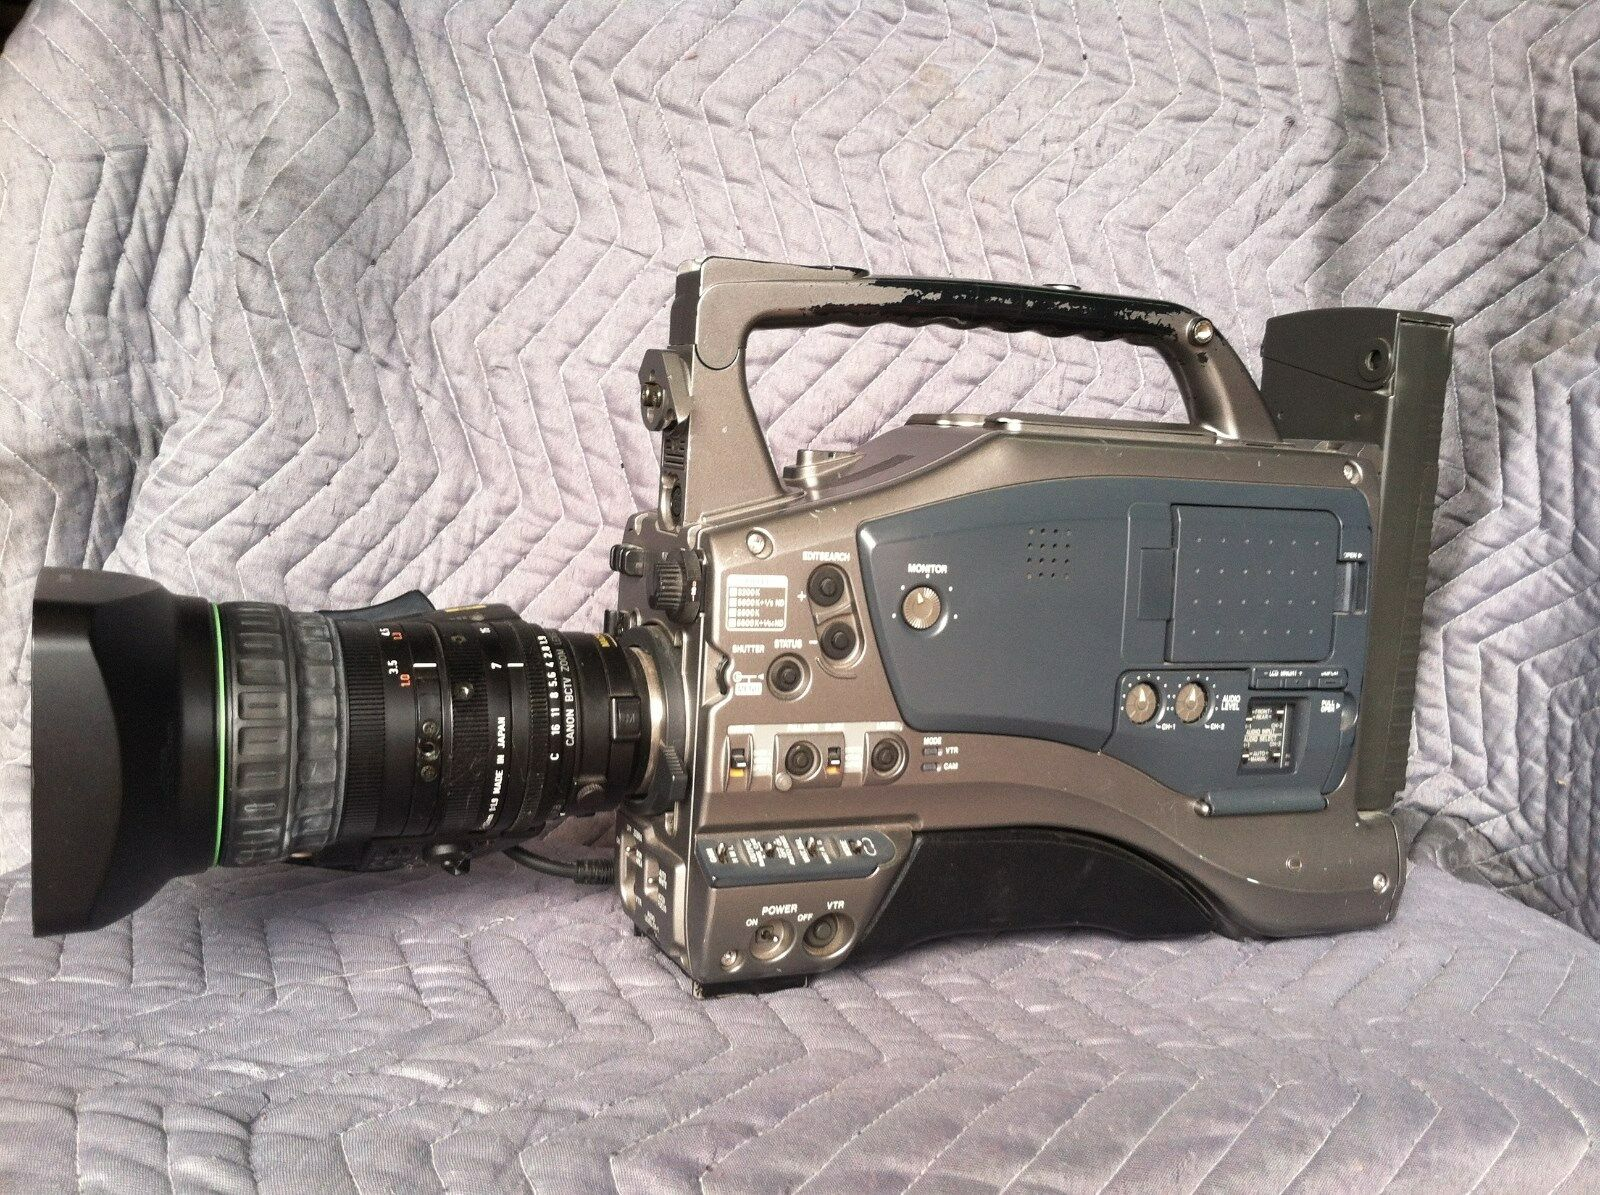 JVC GY-DV5000U w/ Canon 16x lens [See Condition Description]